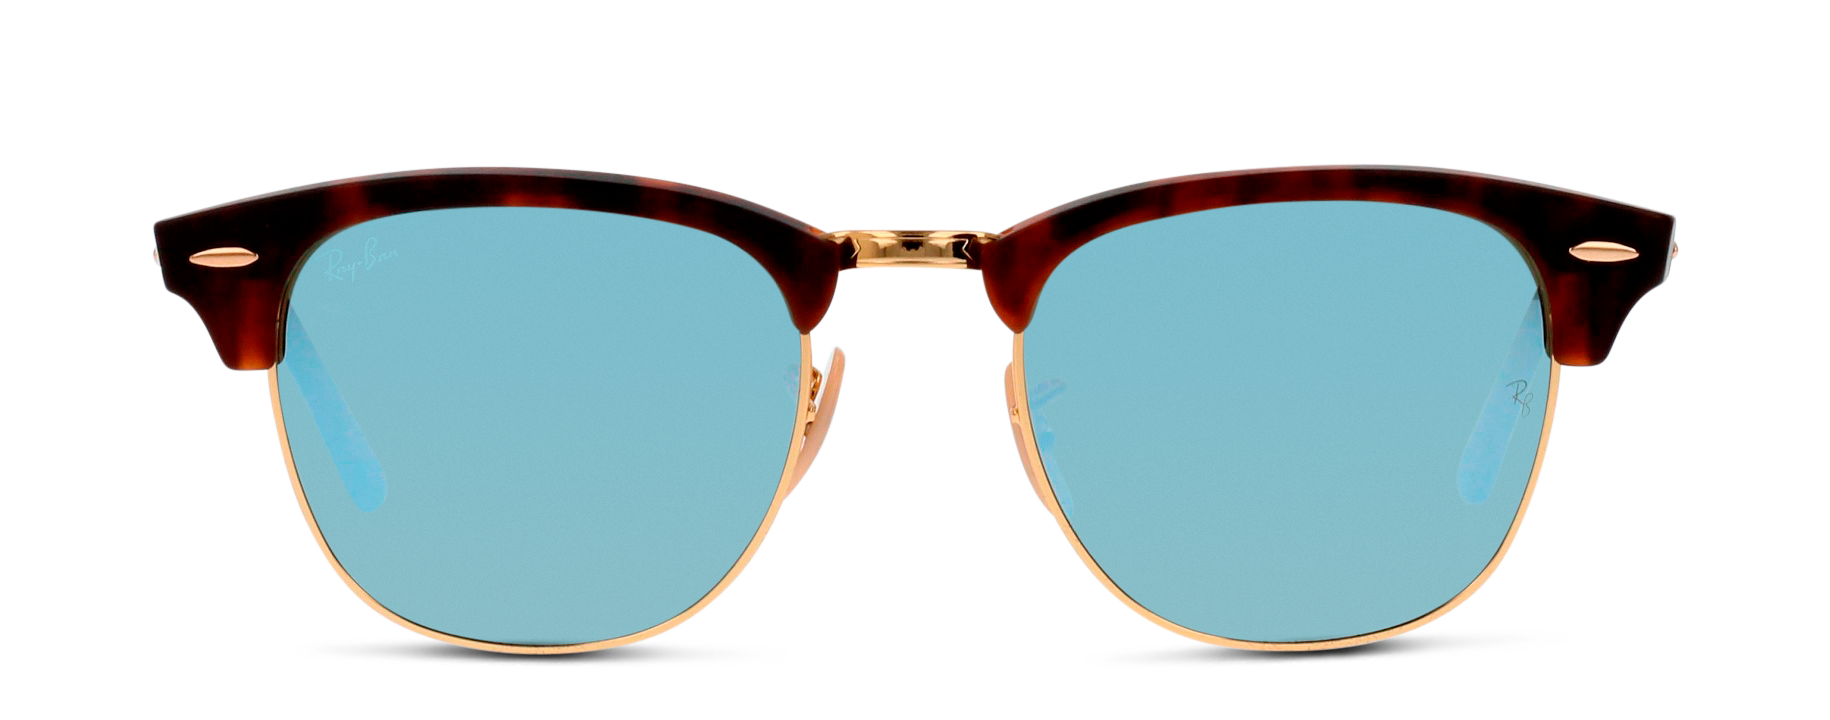 Front Ray-Ban Ray-Ban 3016 114530 51/21 Goud, Bruin/Zilver